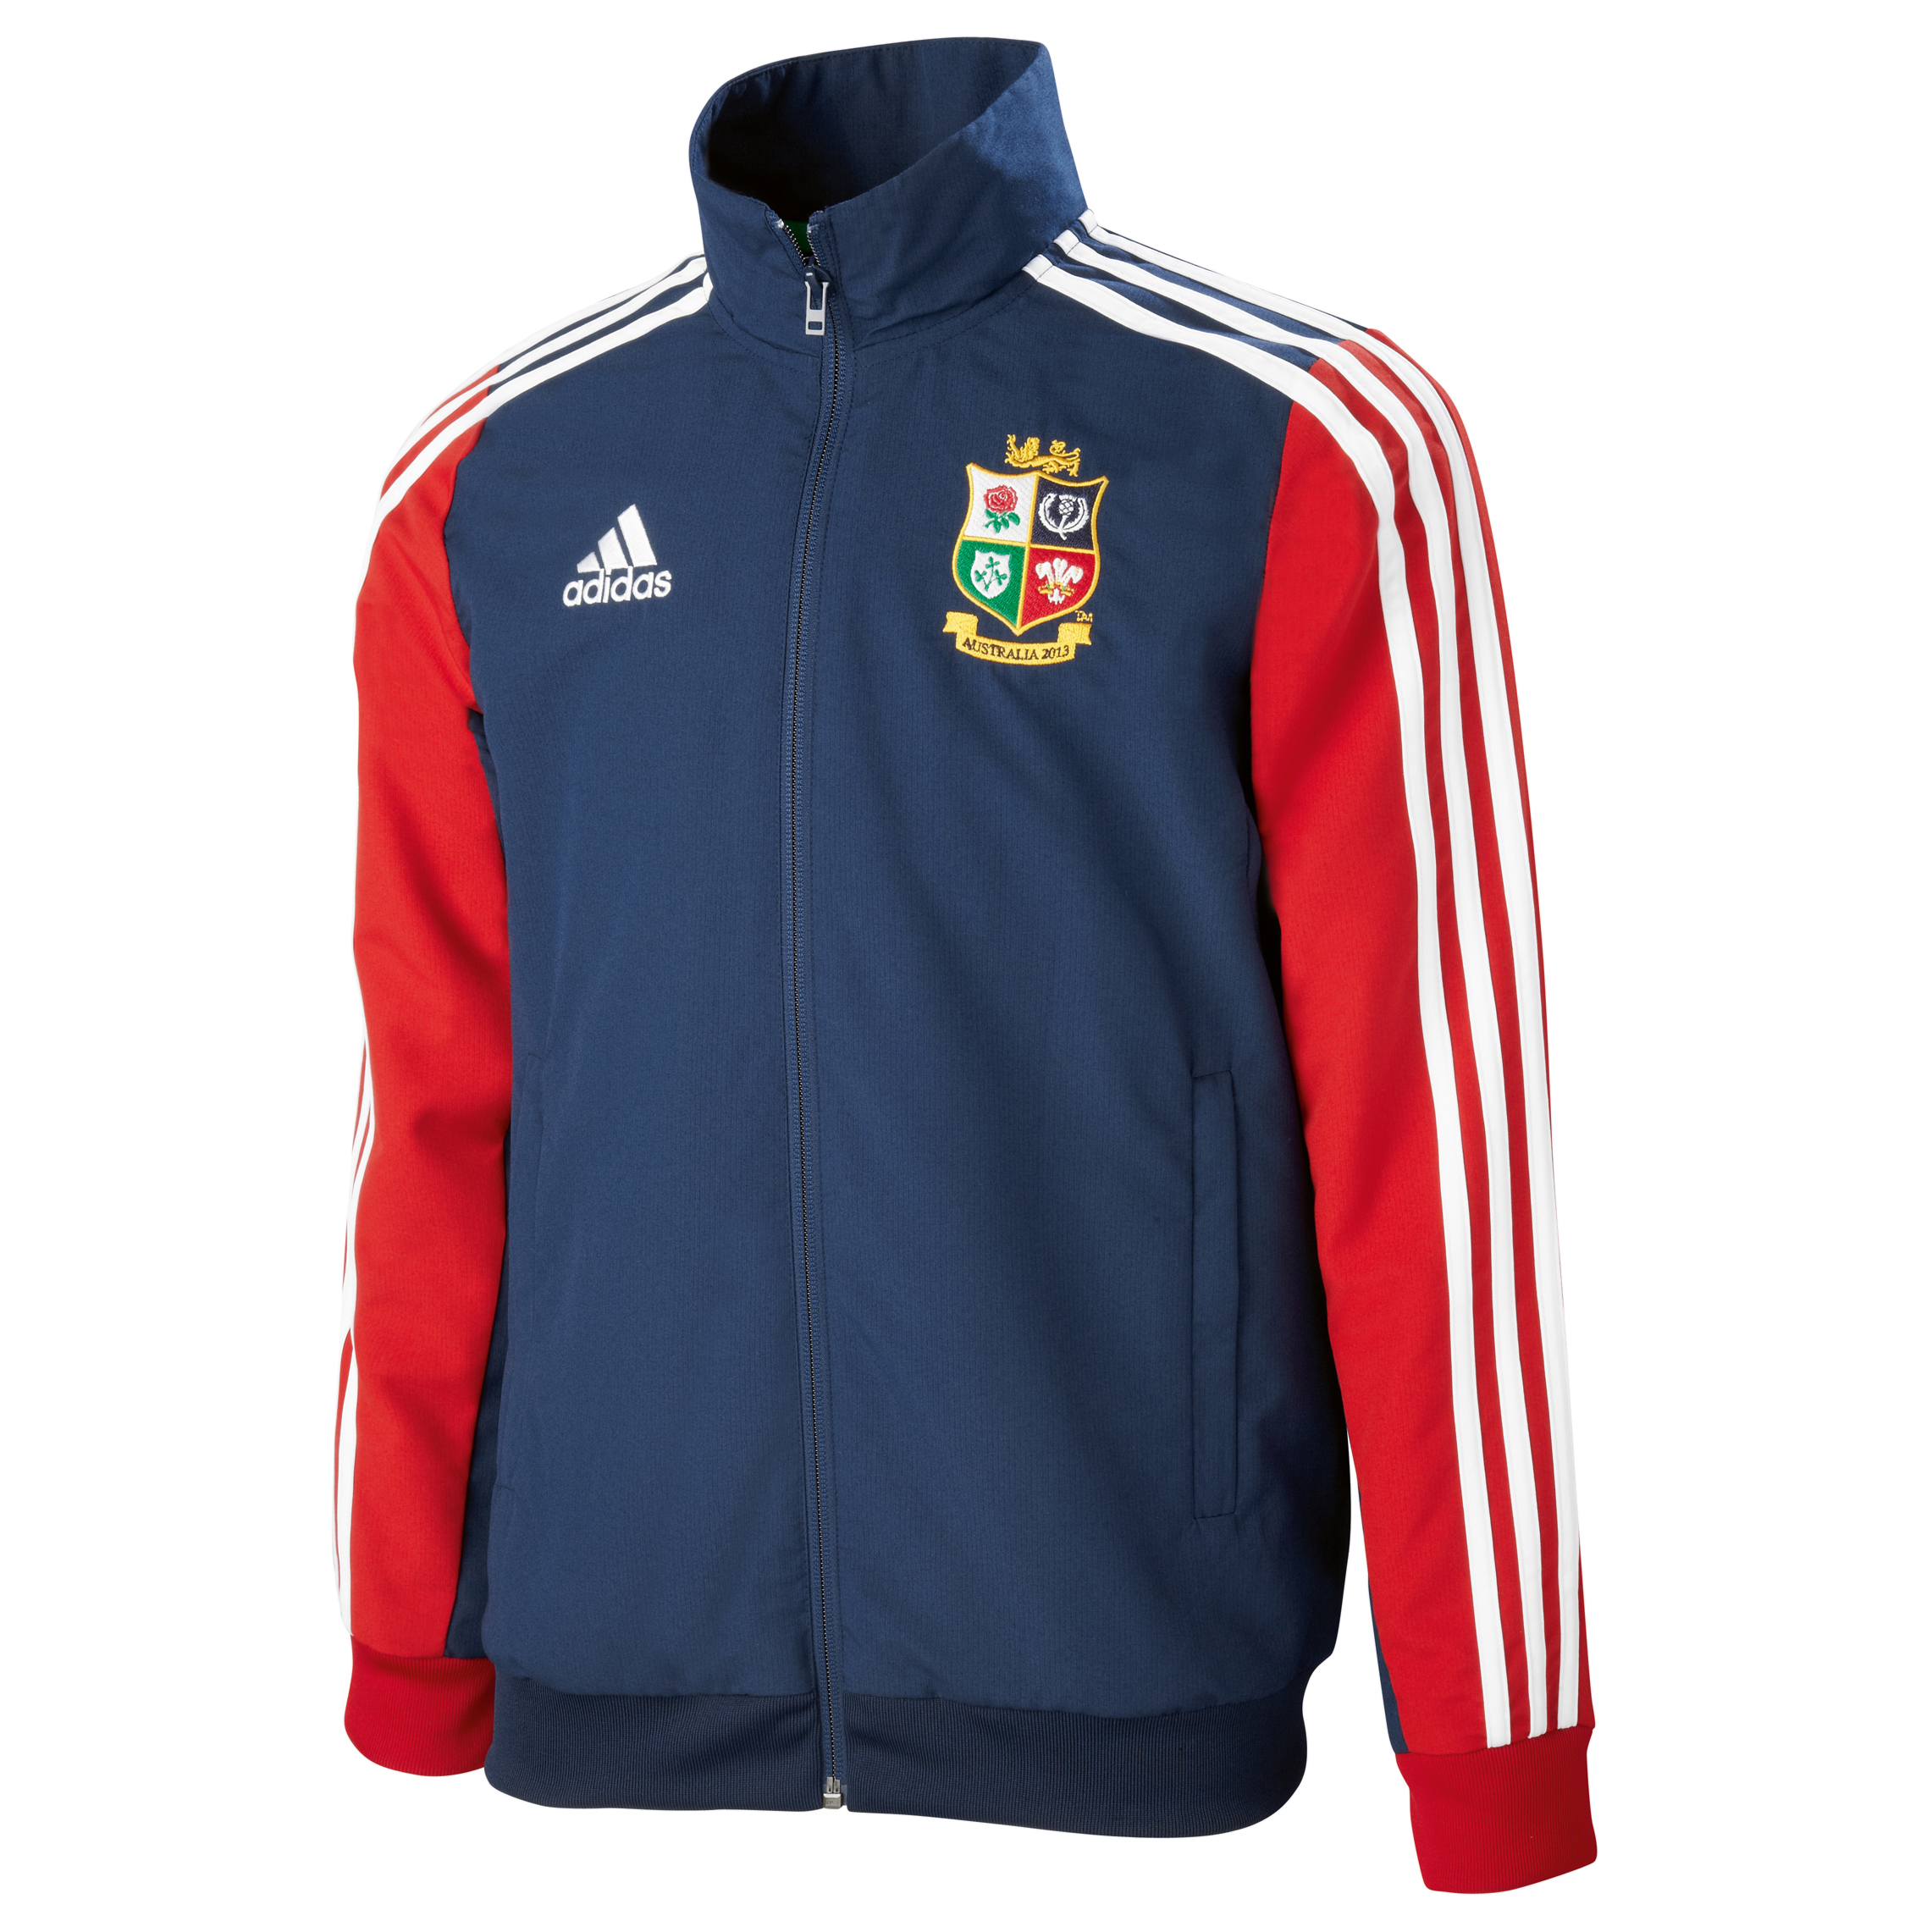 adidas British and Irish Lions Presentation Jacket - Collegiate Navy/University Red/White - Kids